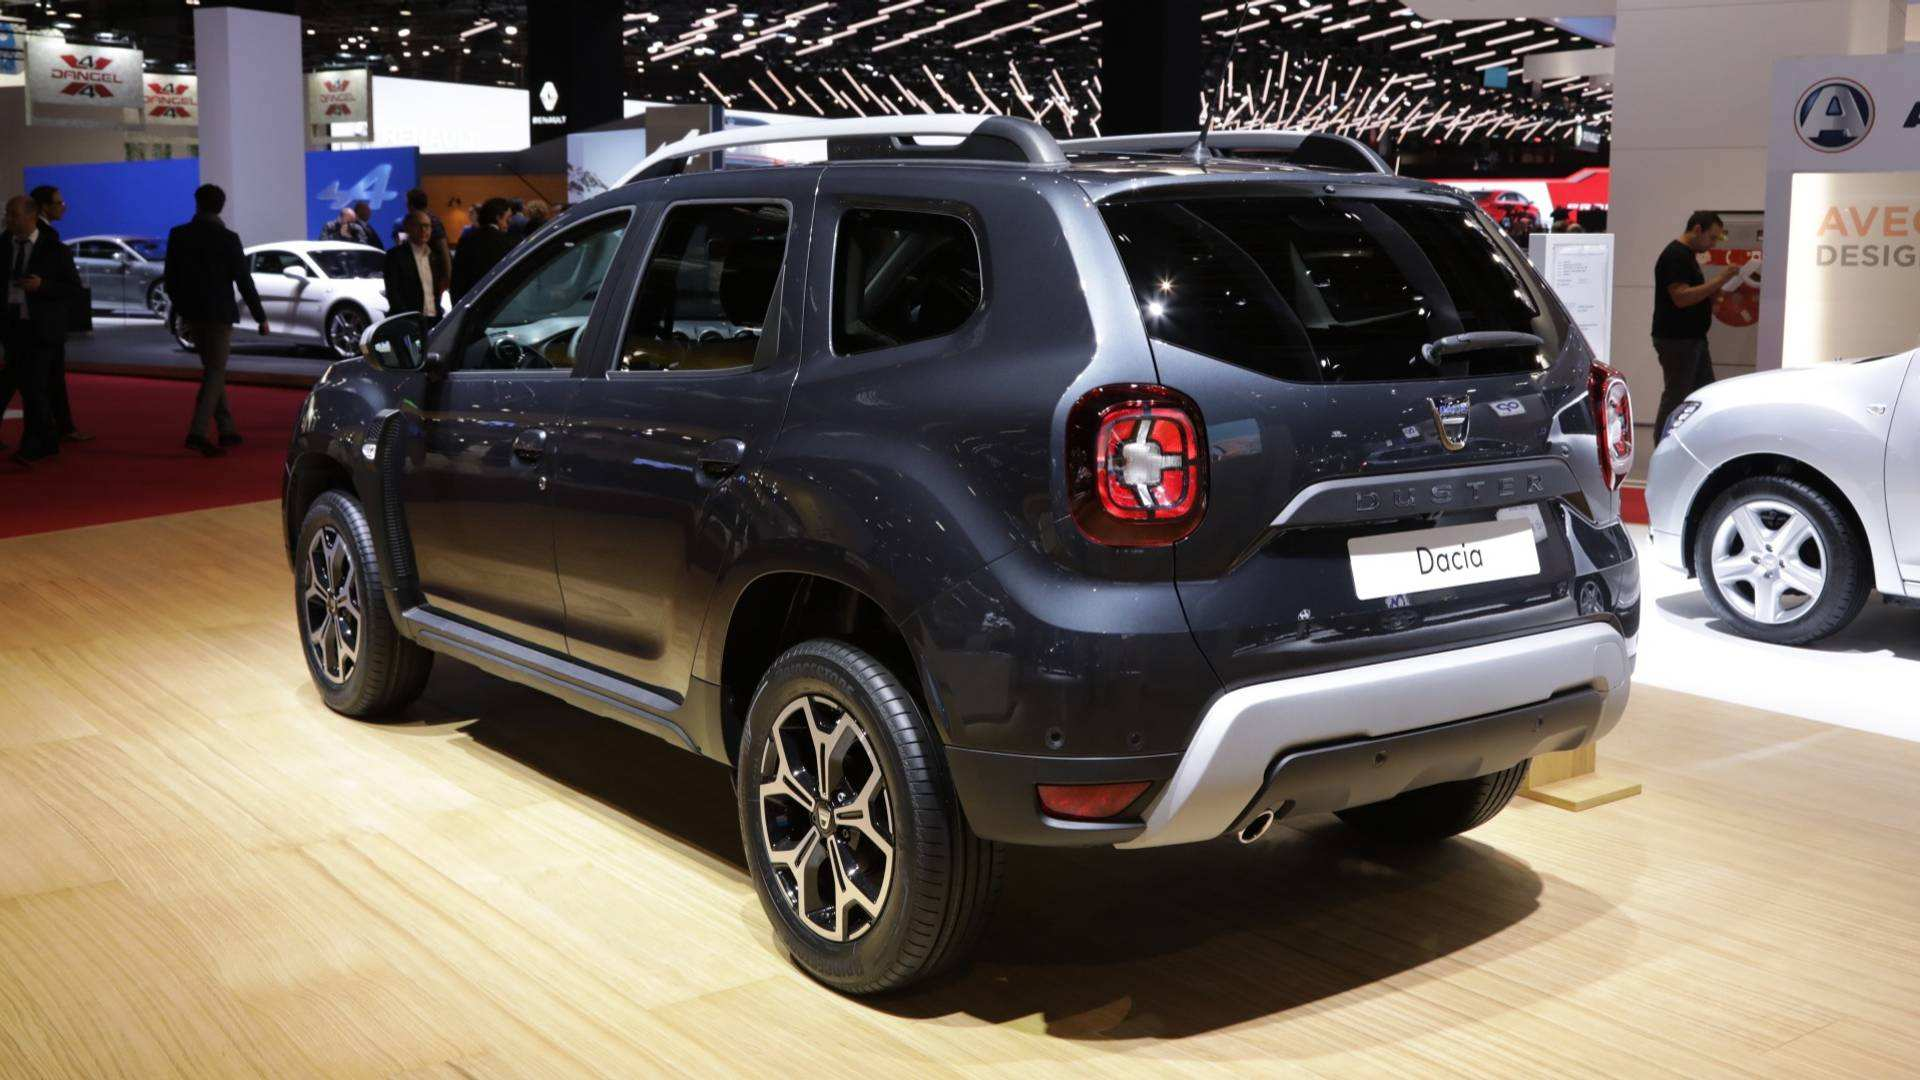 45 All New Dacia Duster 2020 Release Date